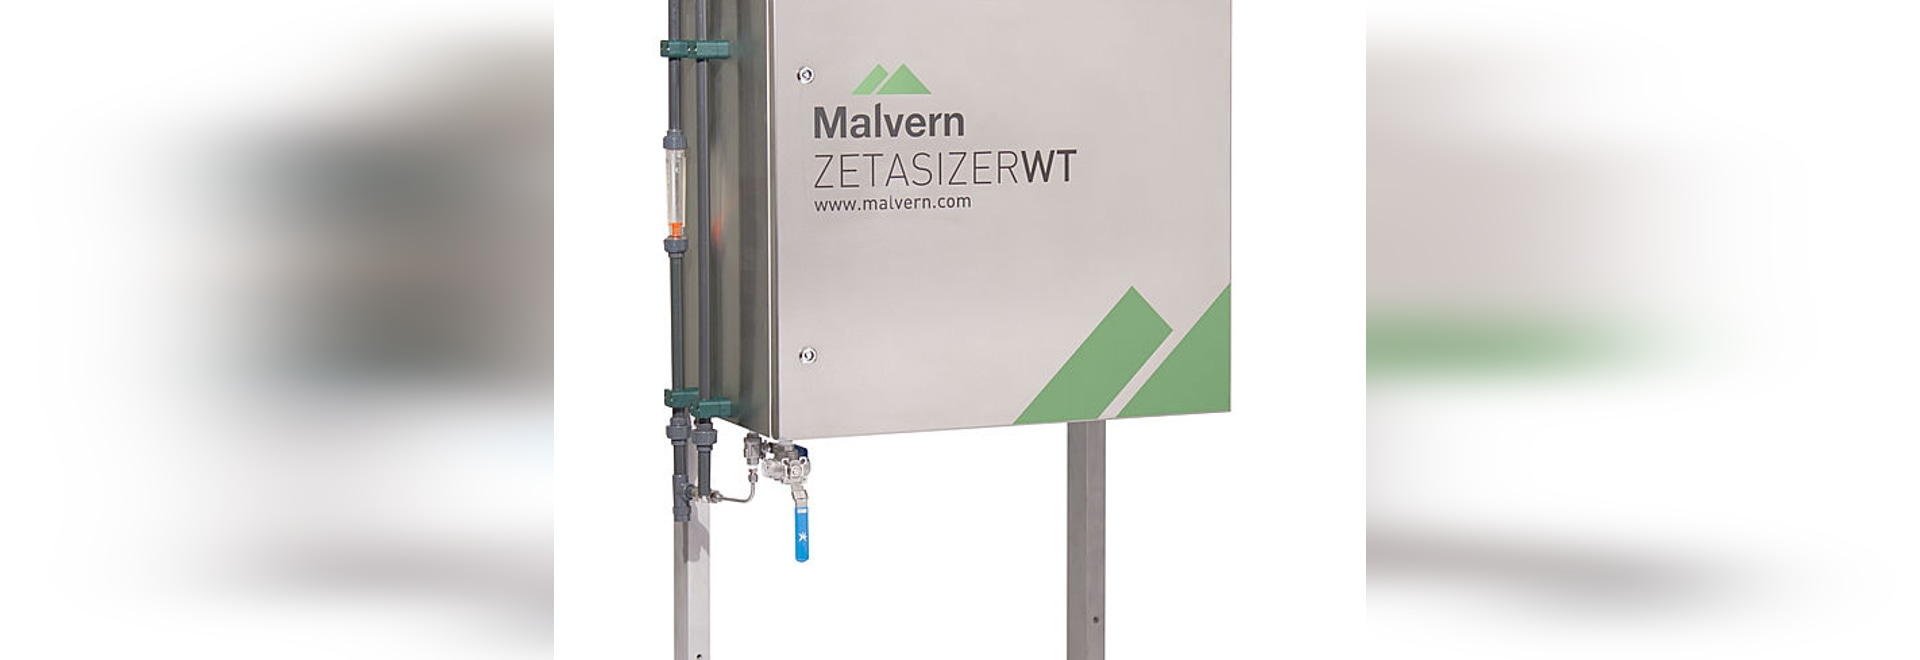 Malvern's Zetasizer WT as its leading measure of clarification performance at Severn Trent Water